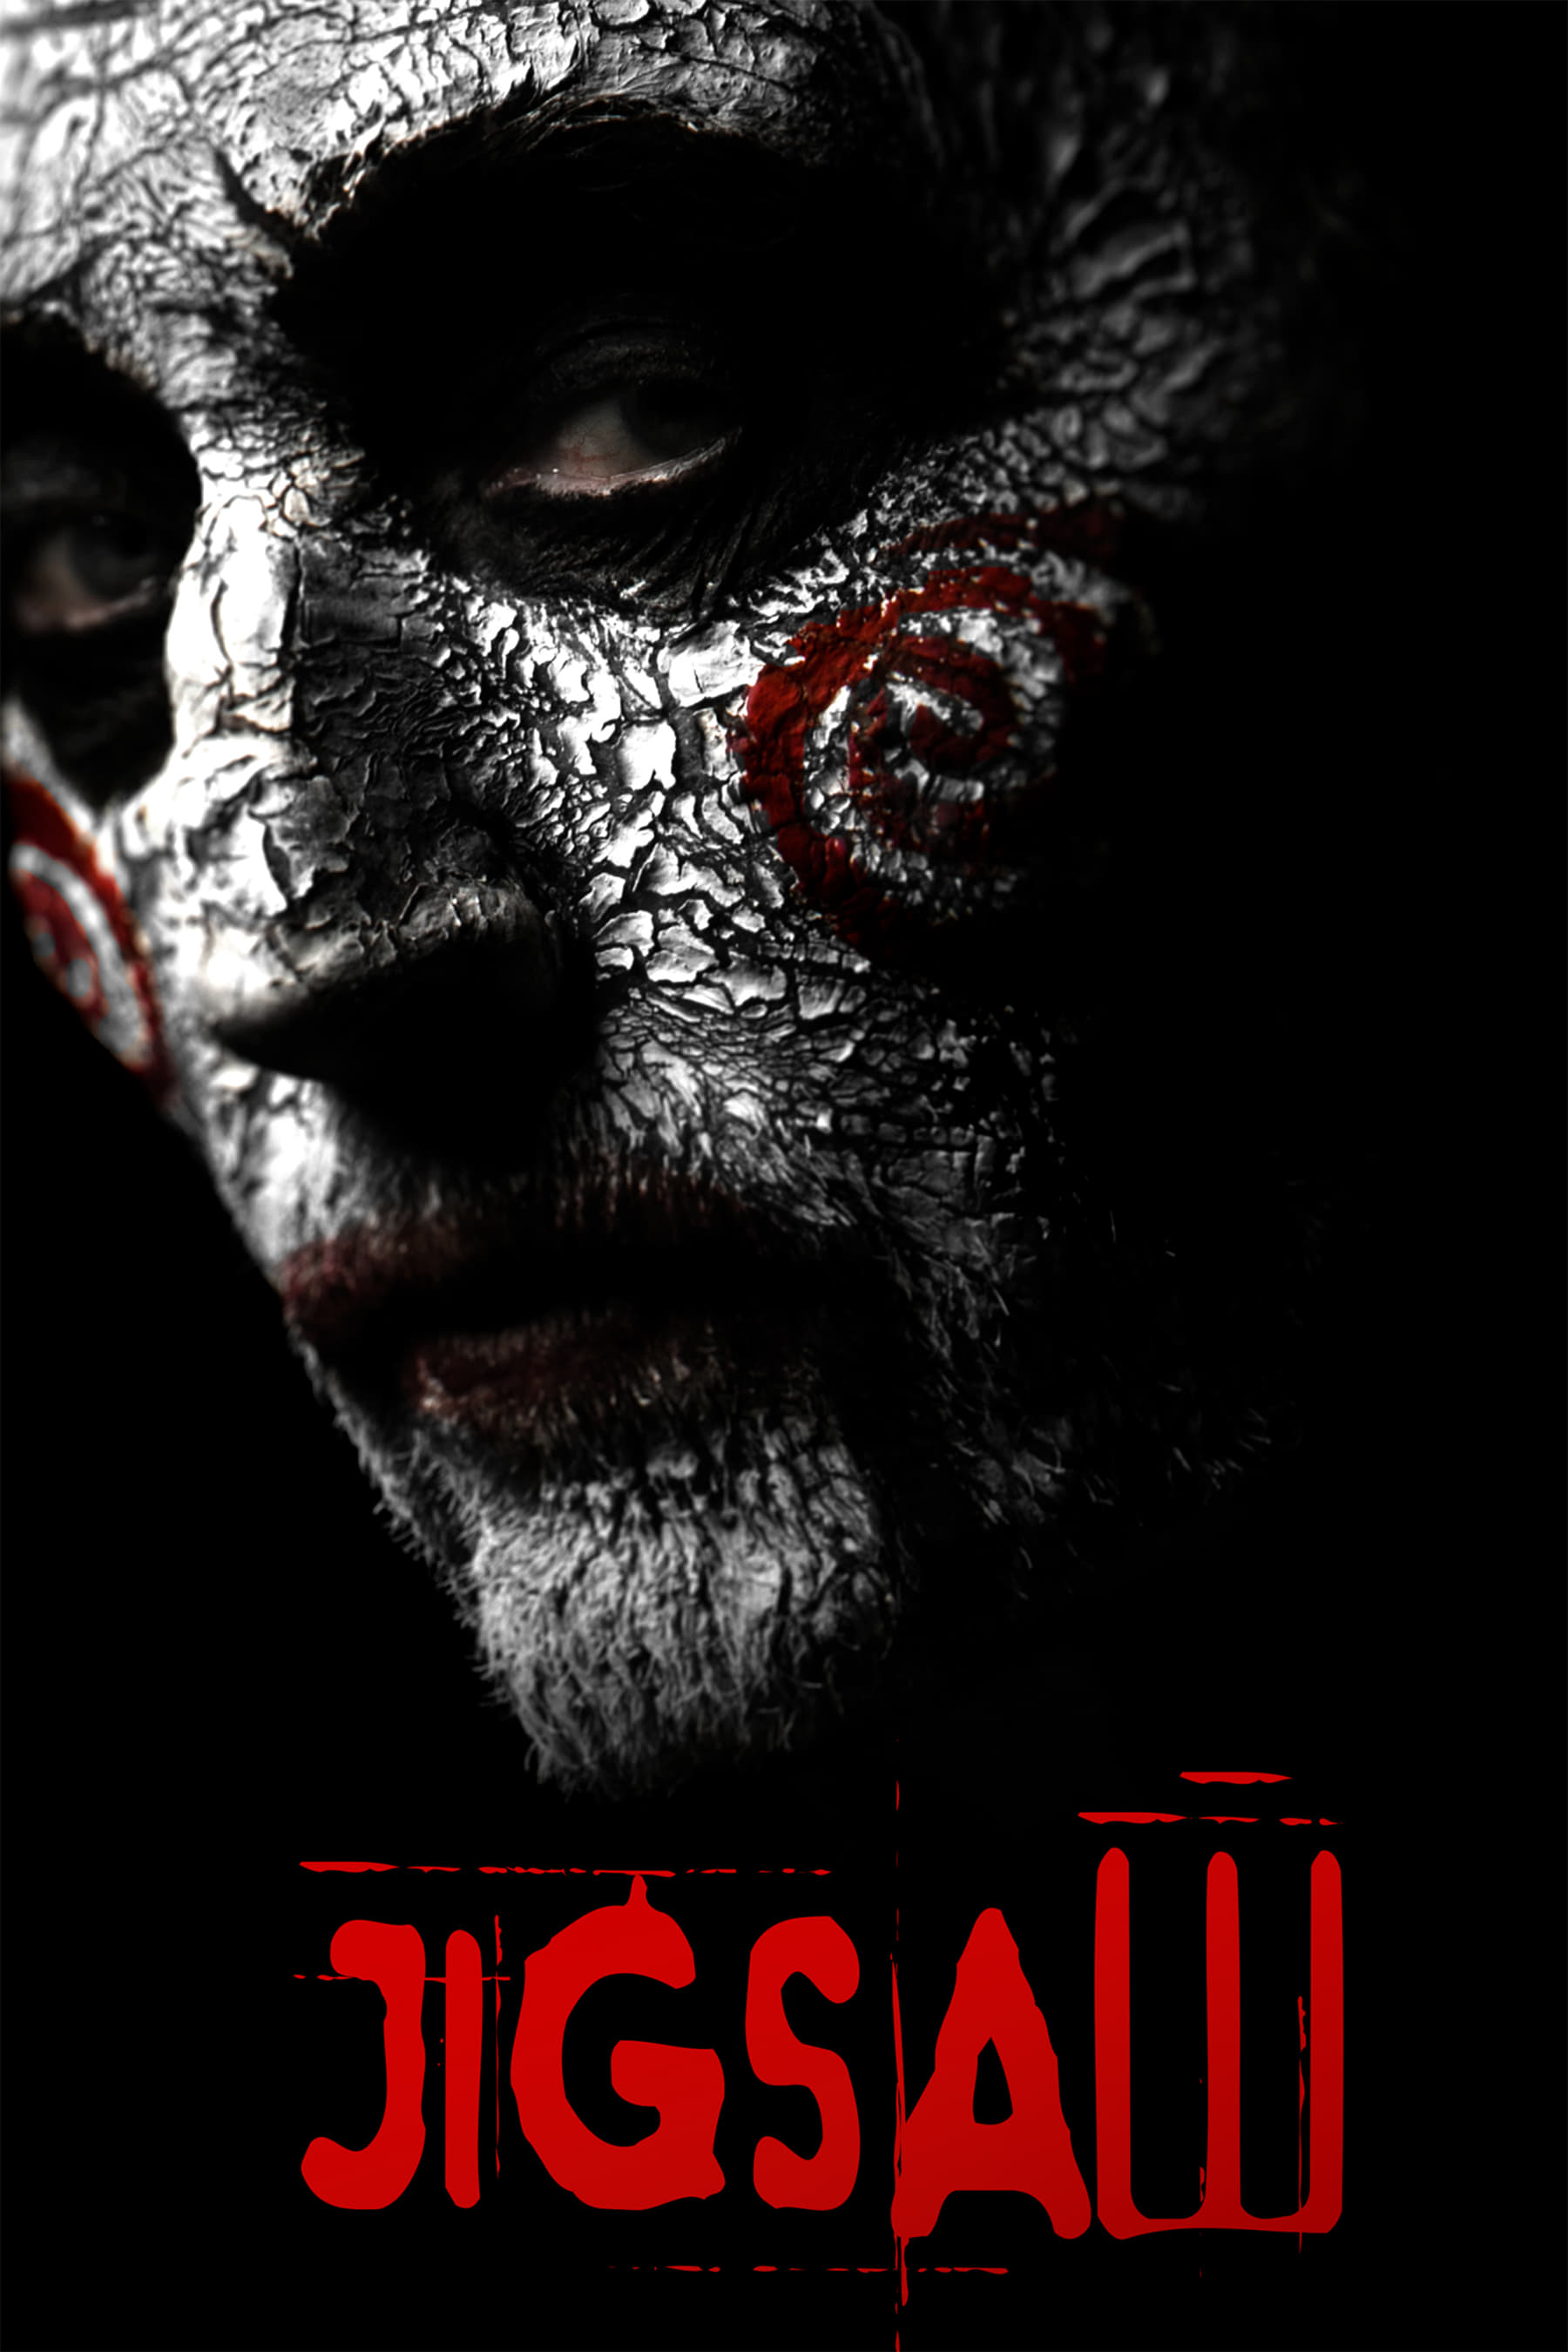 Jigsaw (Saw 8) 2017 [BRRip 720p] [Latino] [1 Link] [MEGA]